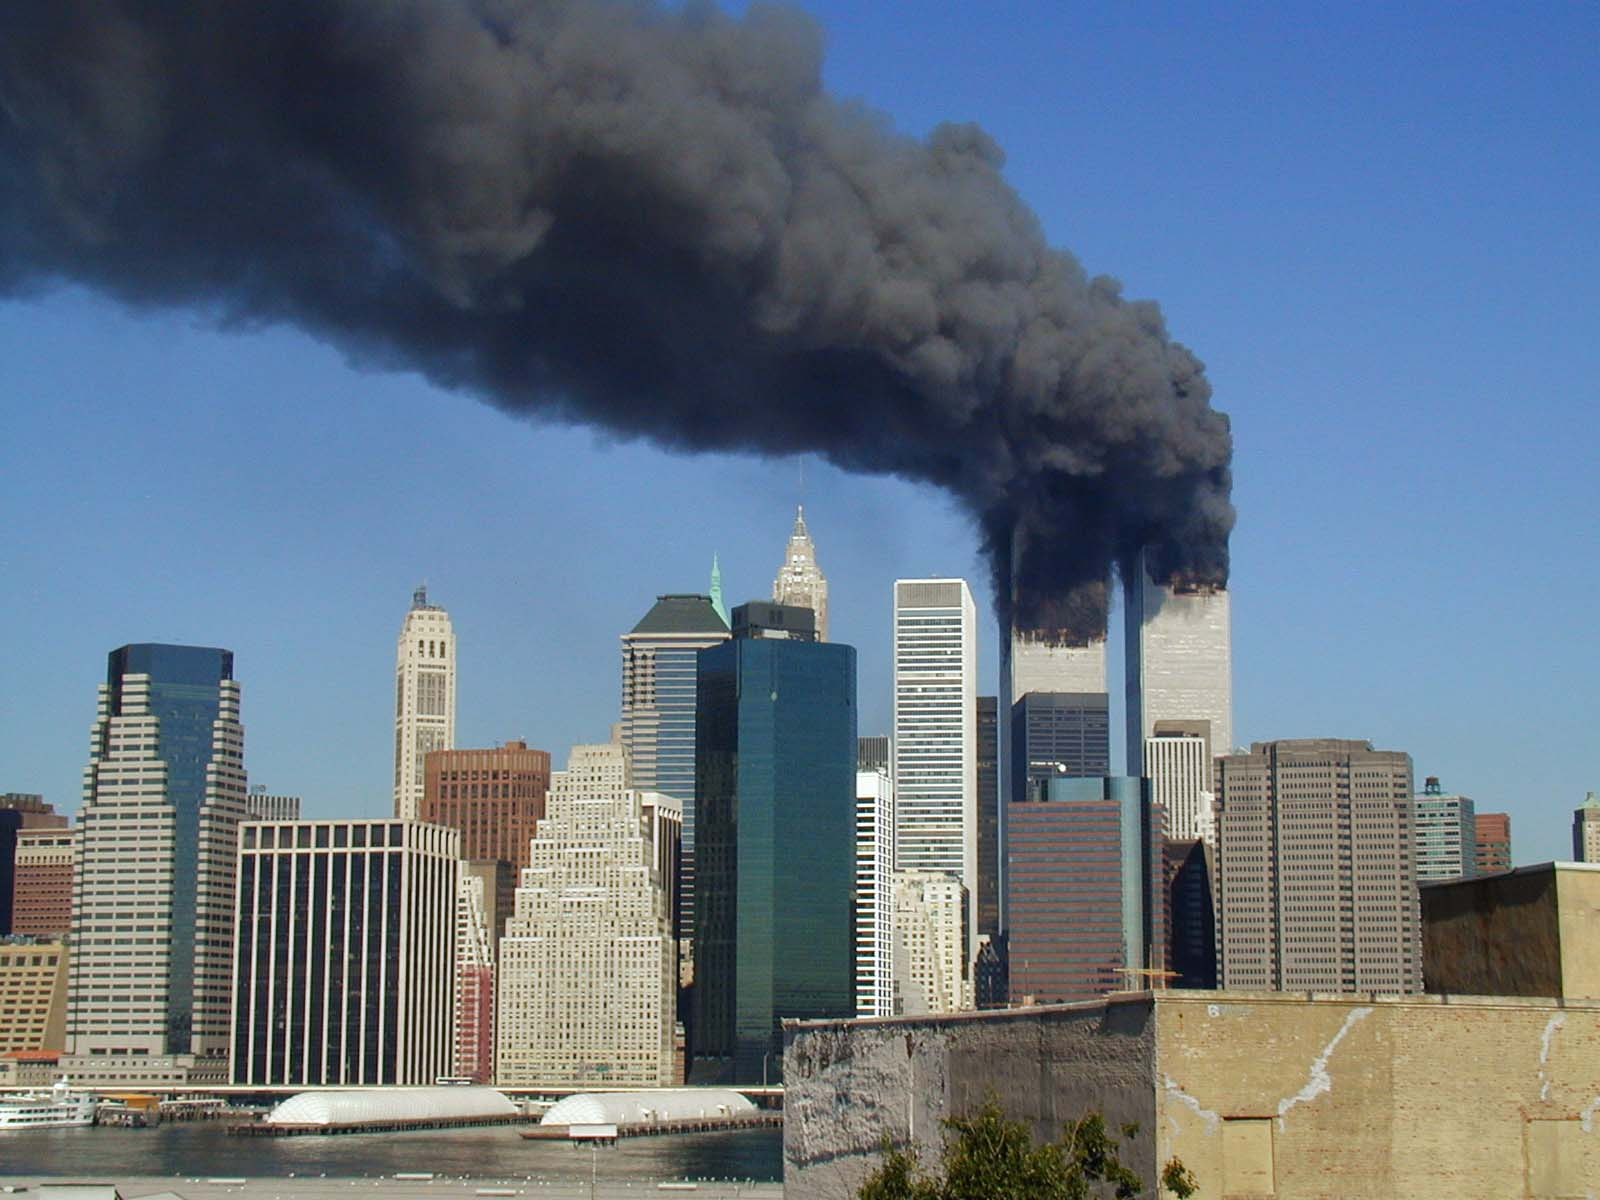 Plumes of smoke billow from the World Trade Center towers in Lower Manhattan, New York City, after a Boeing 767 hits each tower during the September 11 attacks. Photograph taken by Michael Foran.